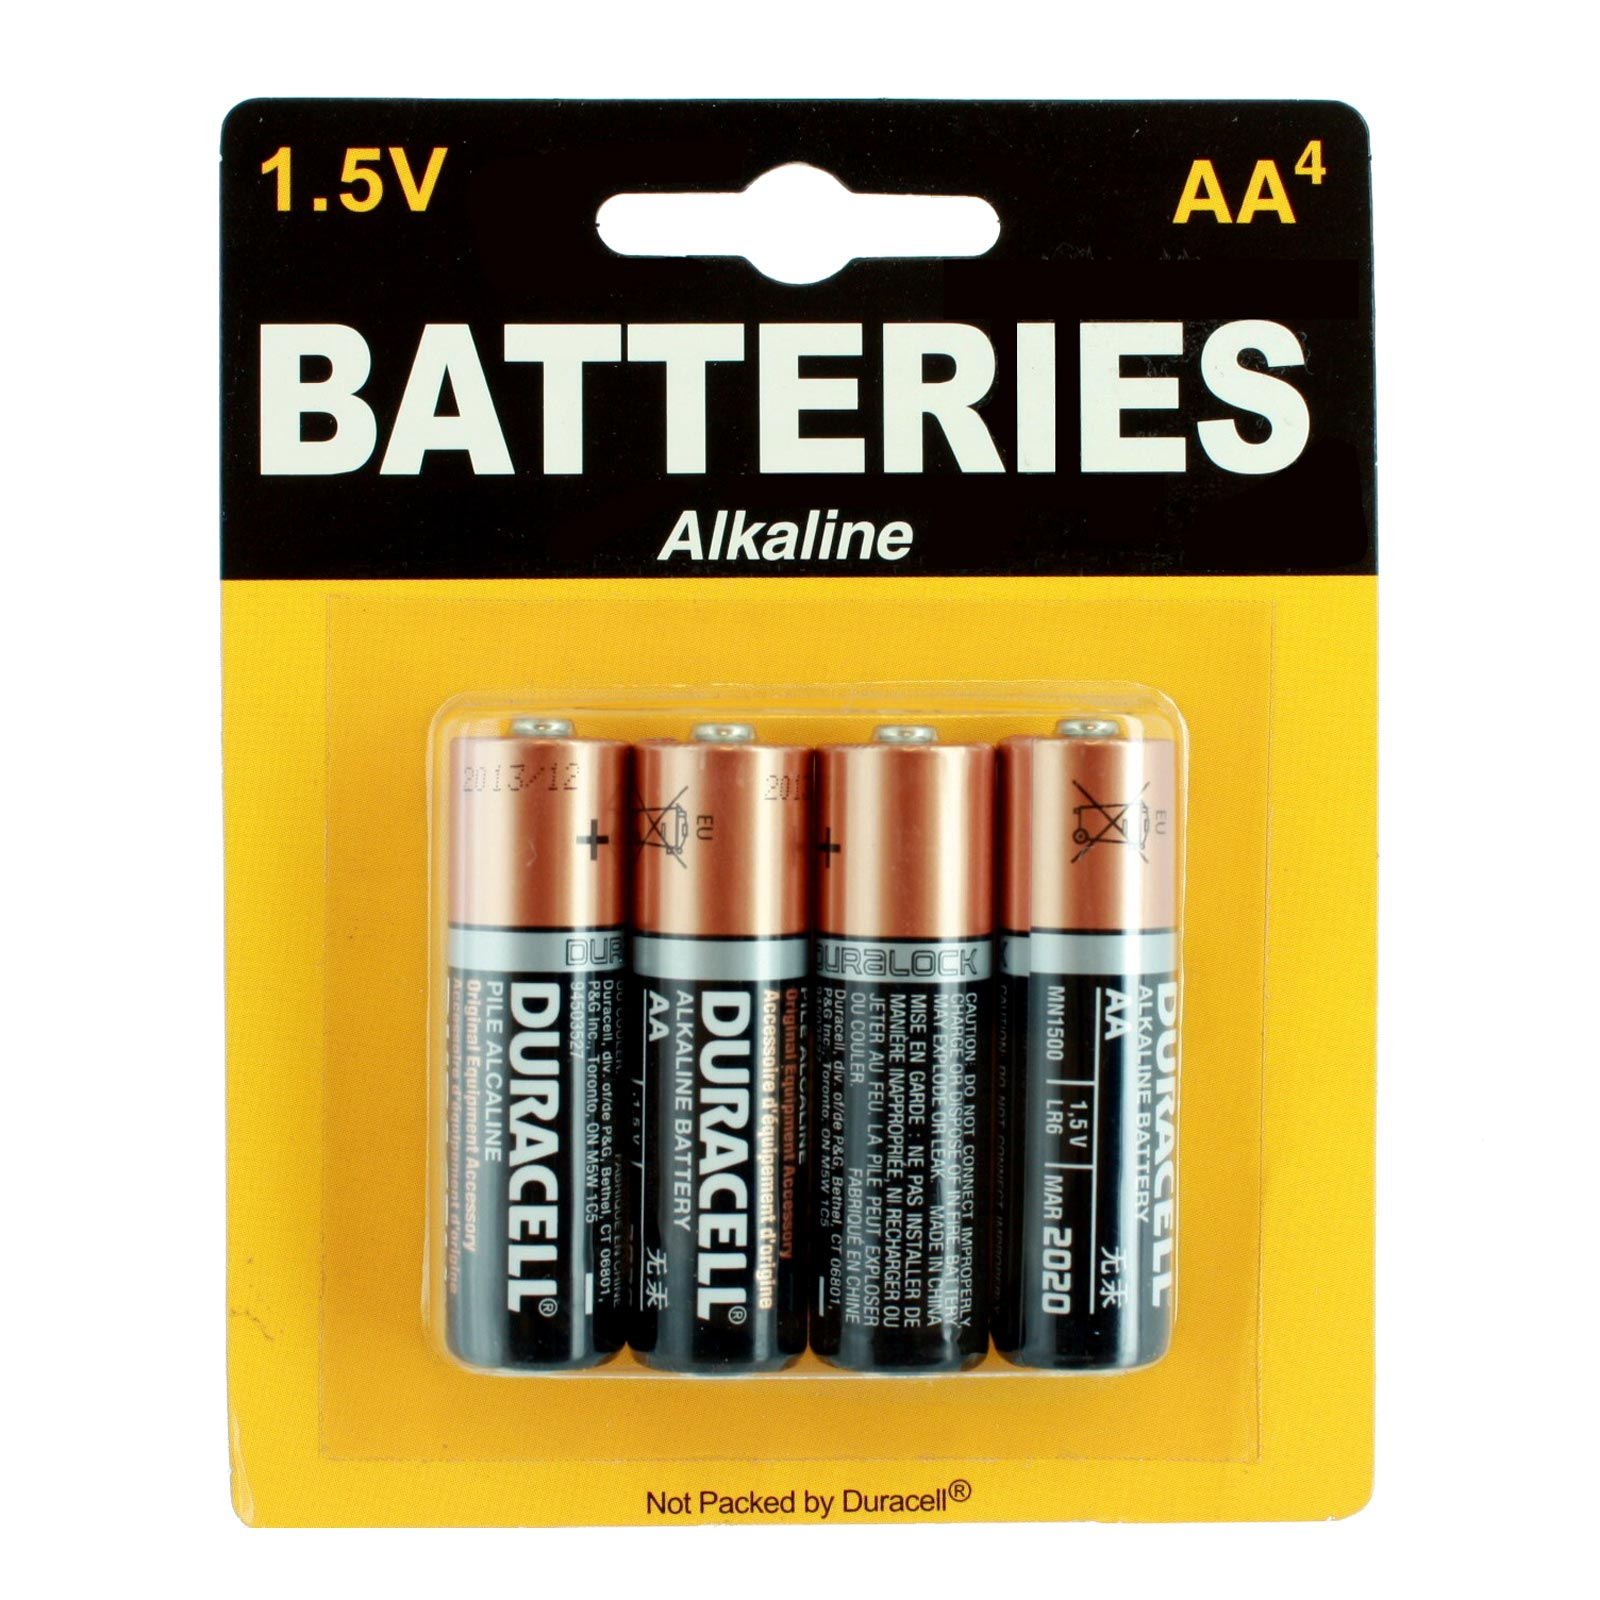 Batterie Lr6 Lr6 Battery Related Keywords And Suggestions Lr6 Battery